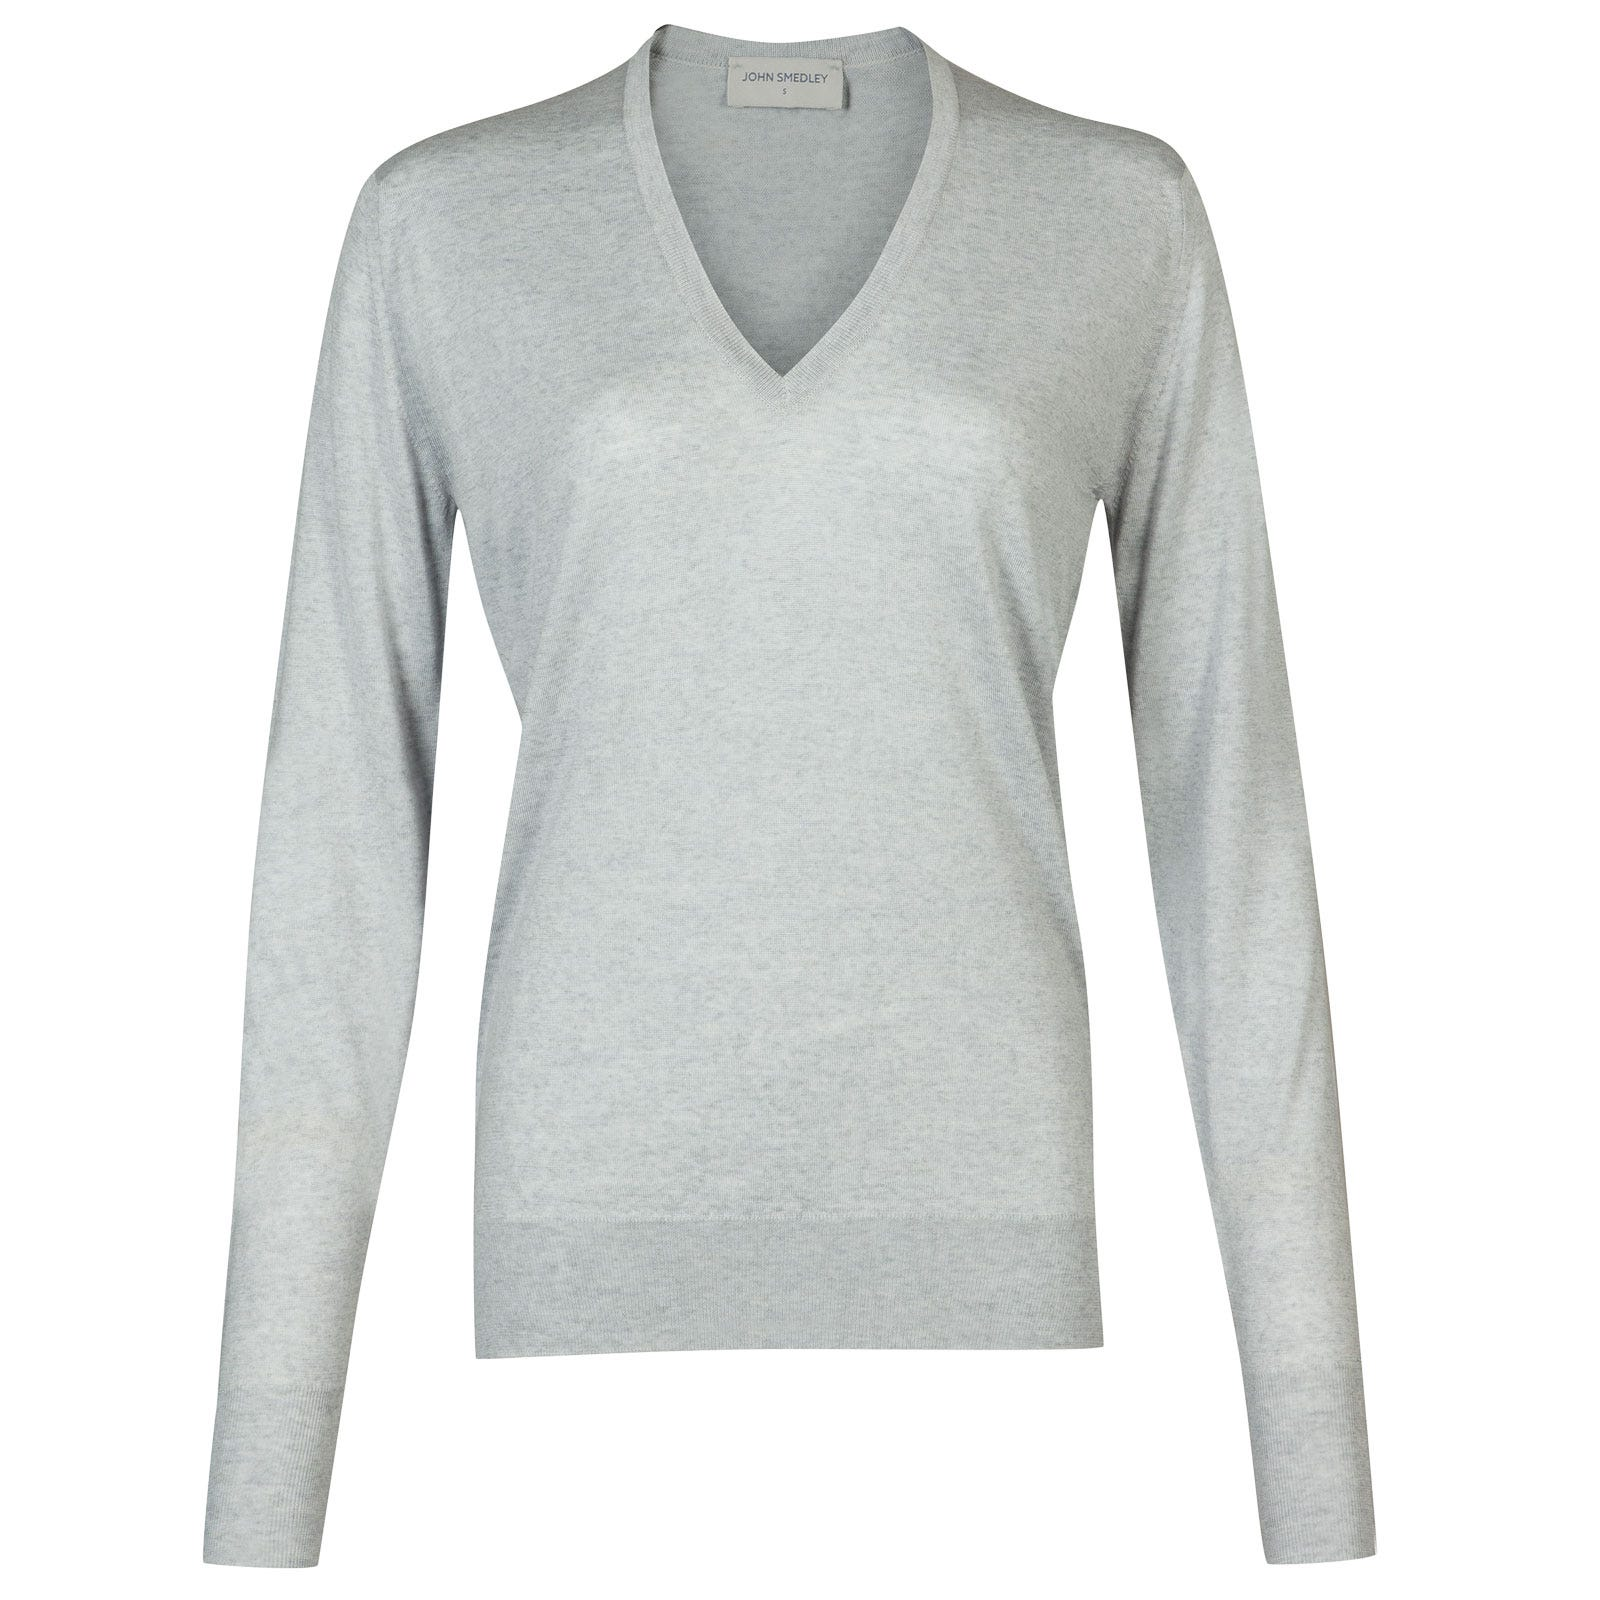 John Smedley Pepin Merino Wool Sweater in Bardot Grey-XL